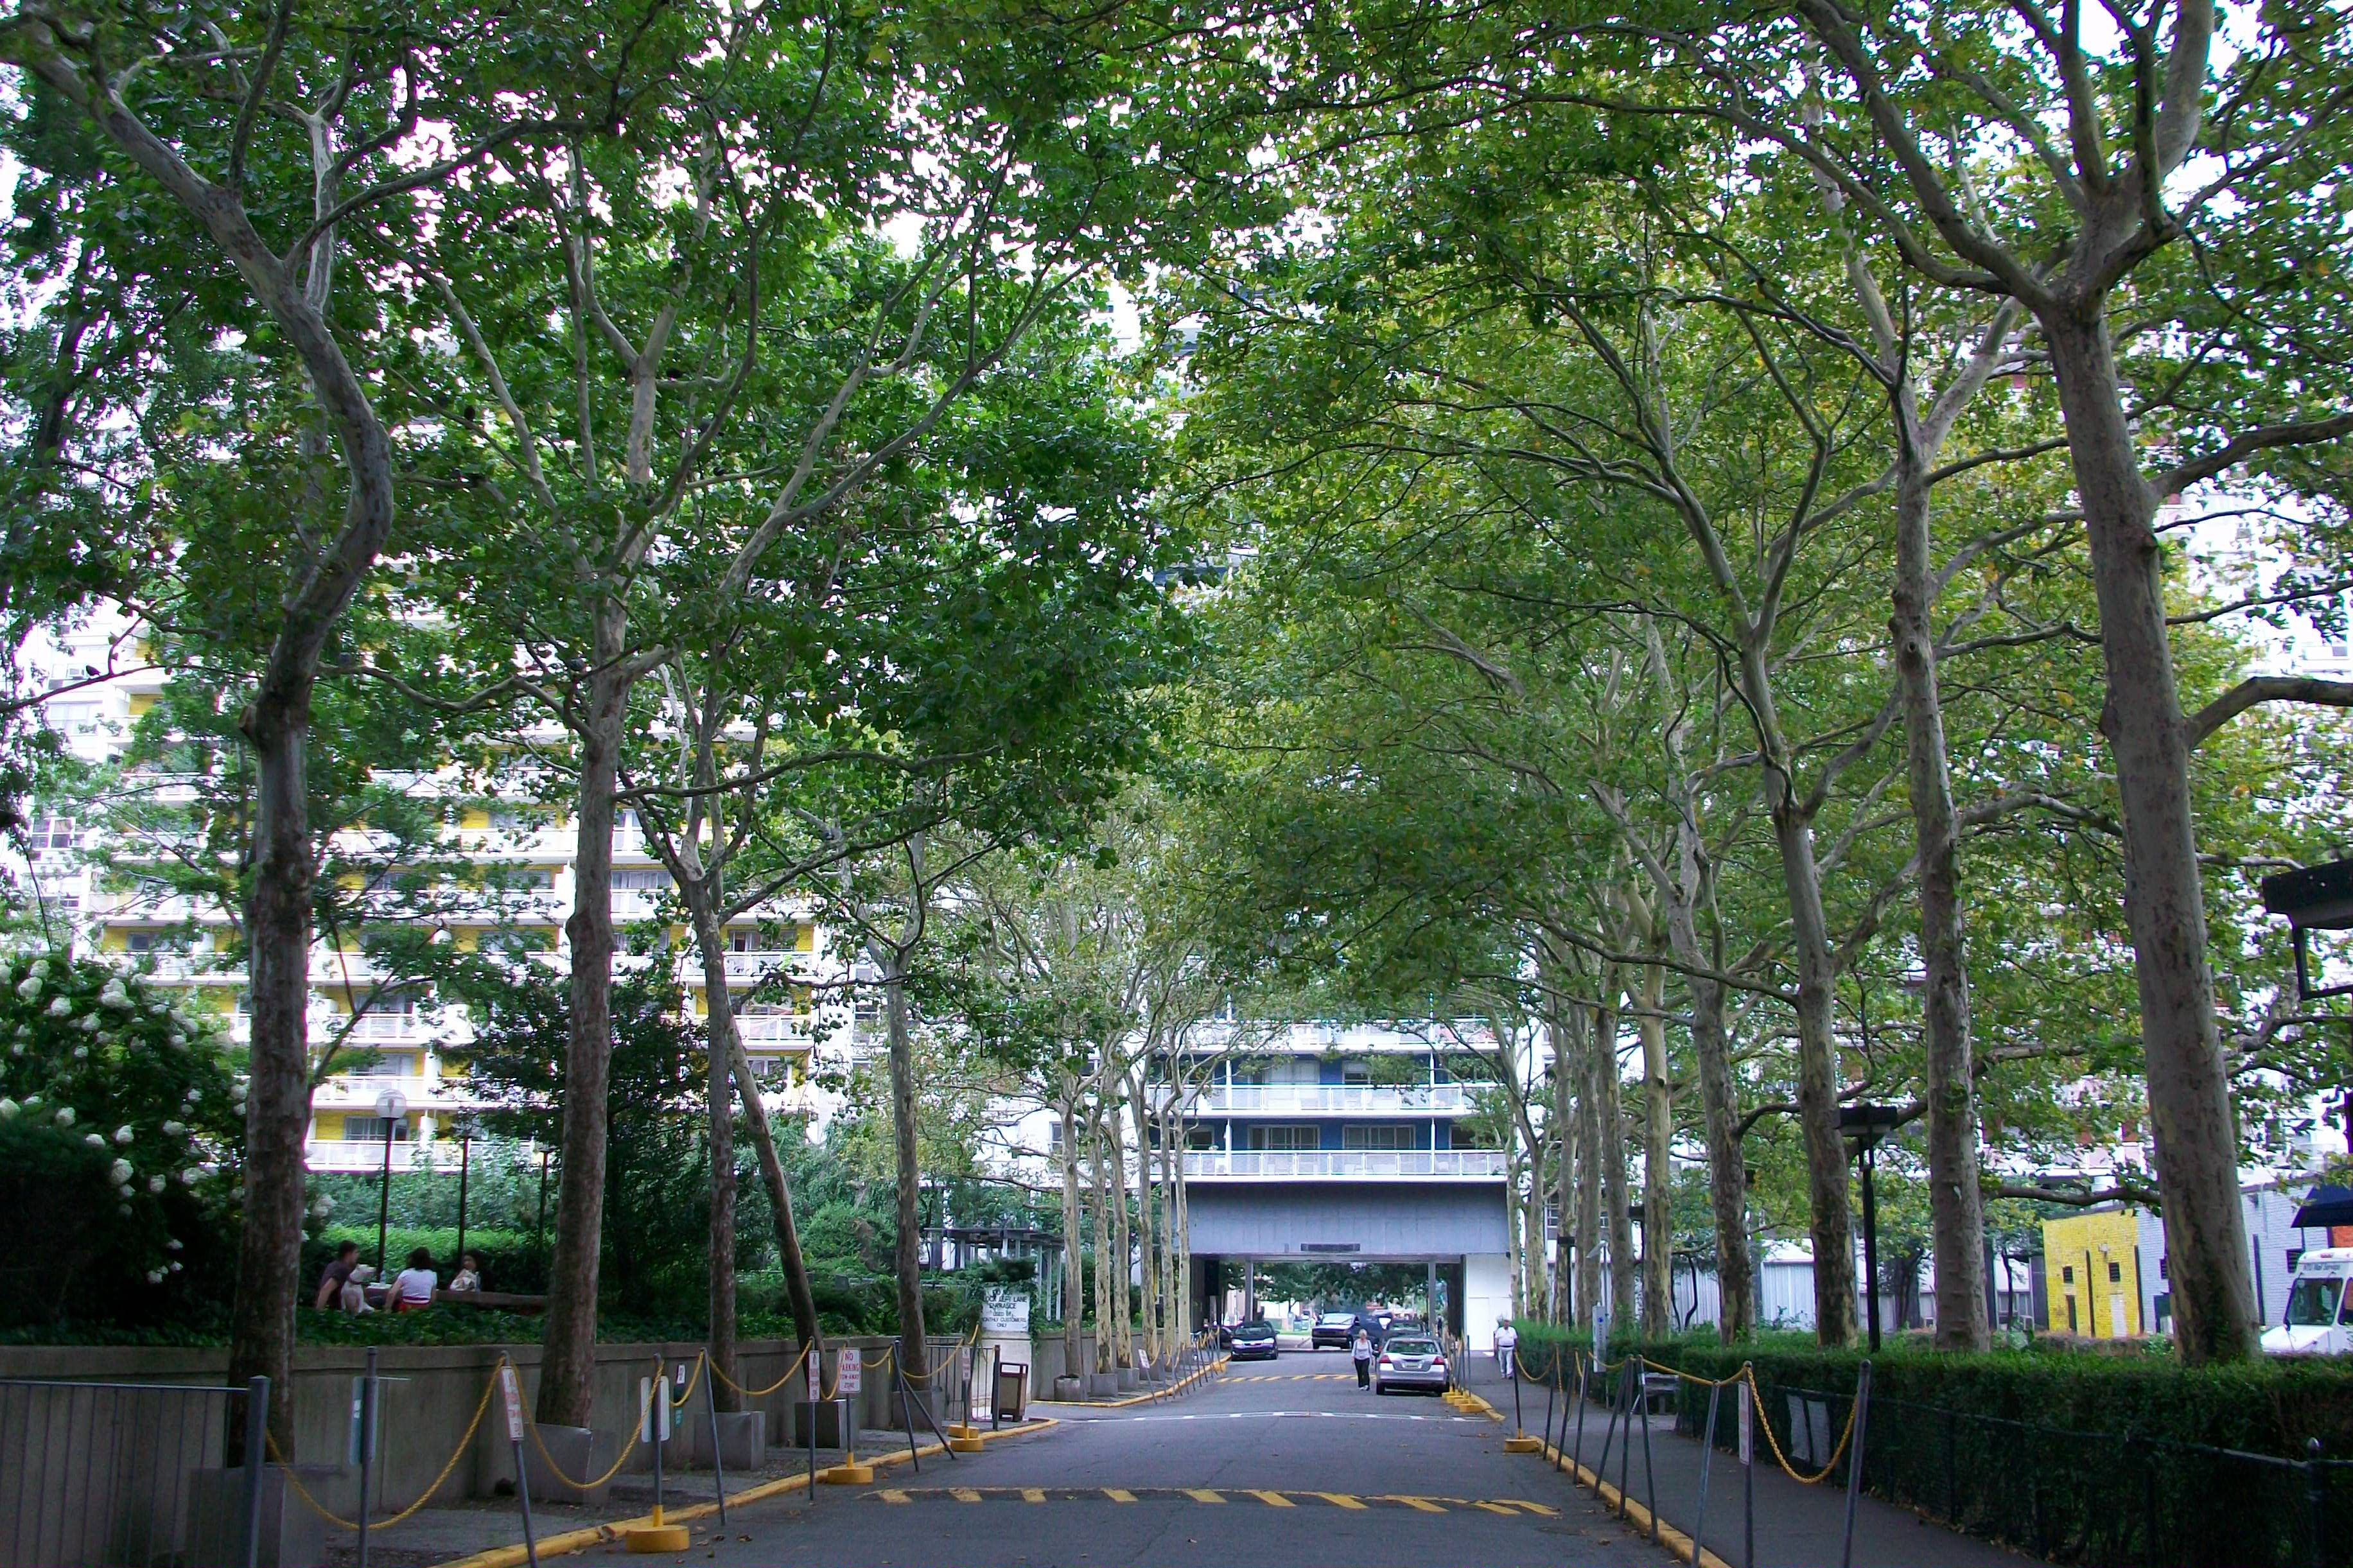 What are the 10 most common street trees in New York City